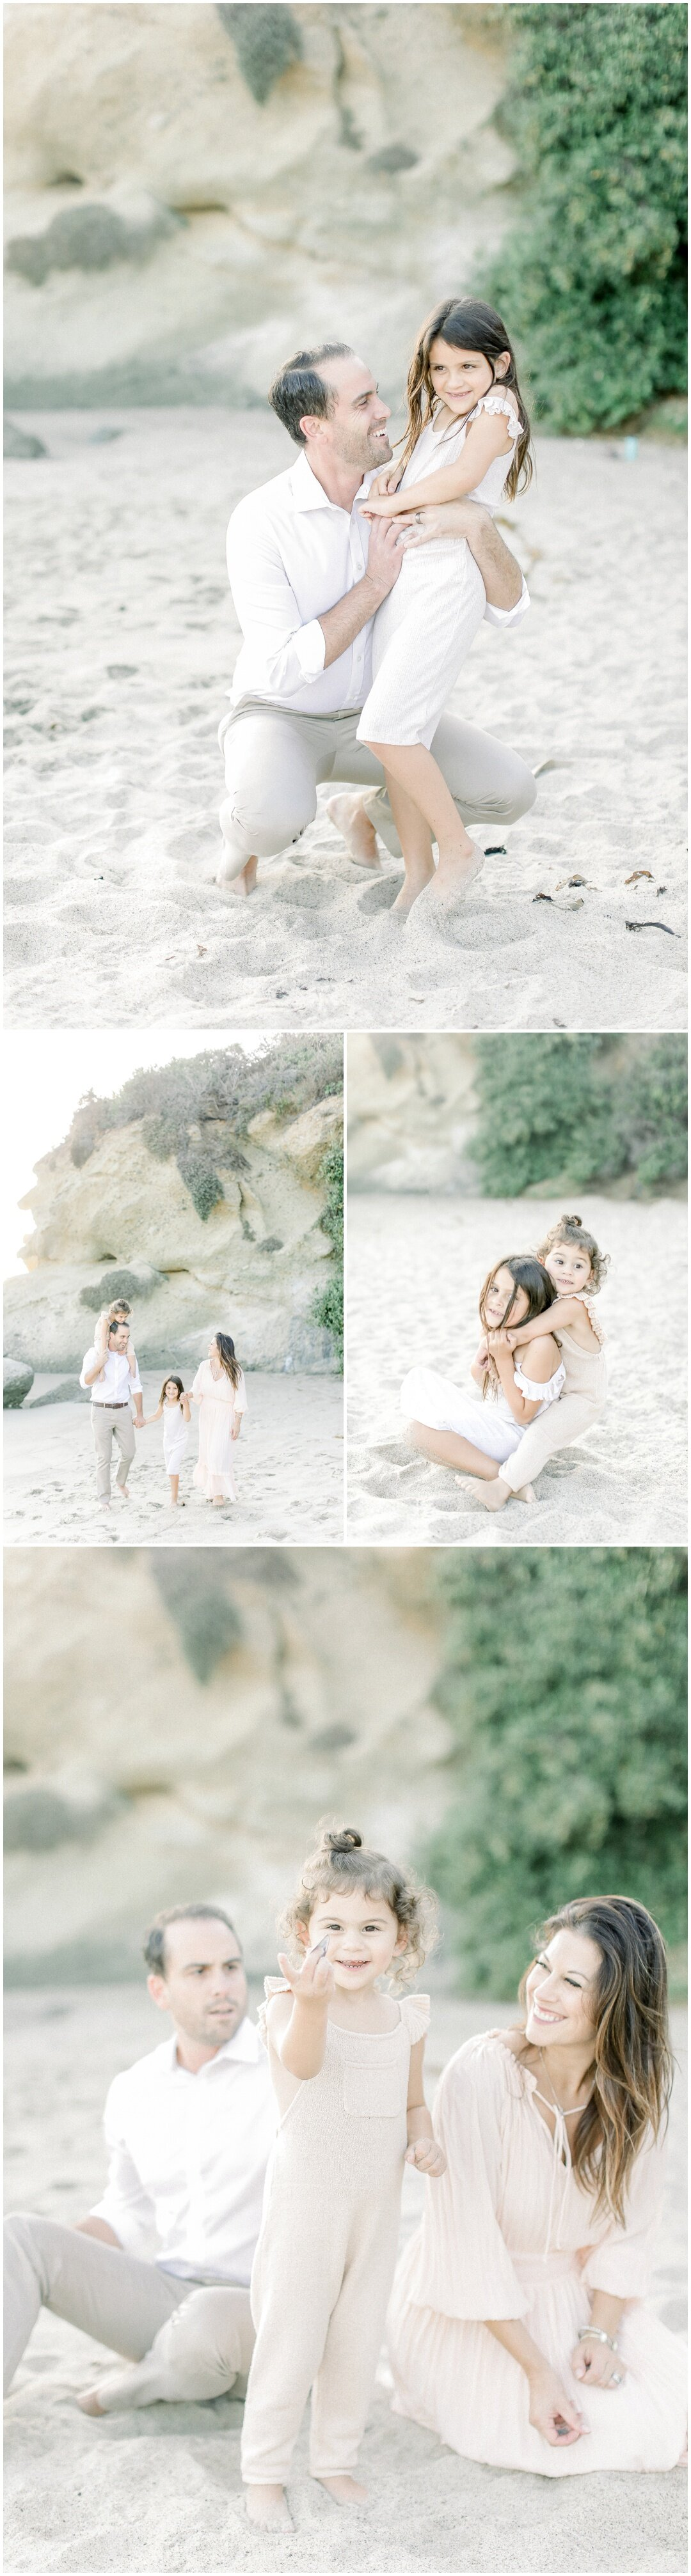 Newport+Beach+Newborn+Maternity+Photographer+Orange+County+Family+Photographer+Cori+Kleckner+Photography+Natalie+Hay+Loretz+Robert+Hay+The+Hay+Family_4445.jpg